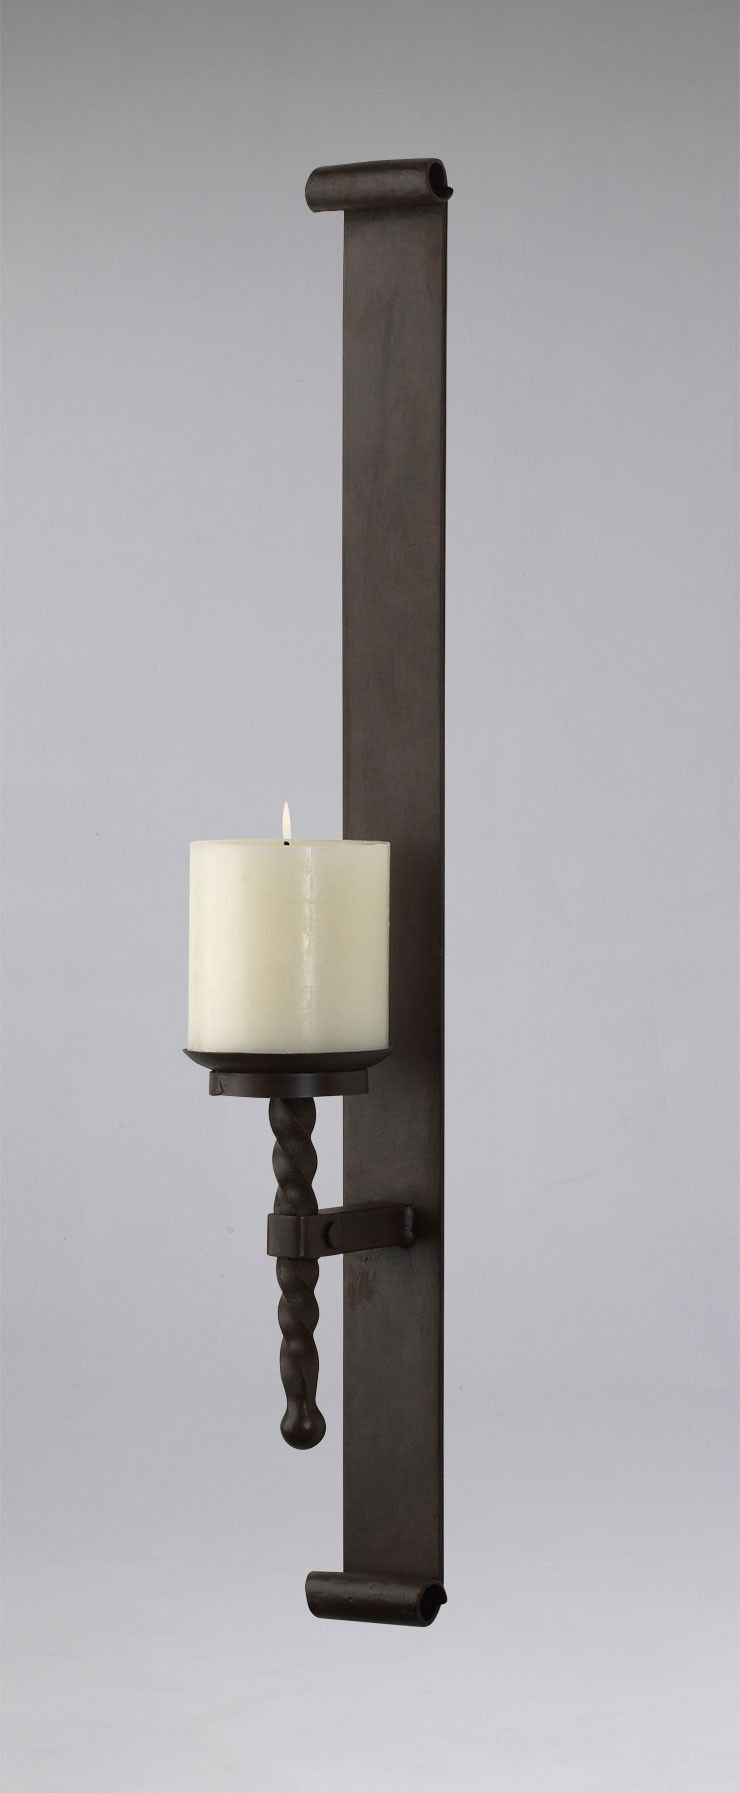 Tuscan Iron Wall Candle Holder Sconce Large Iron Wall Candle Holders Wall Candles Wall Candle Holders